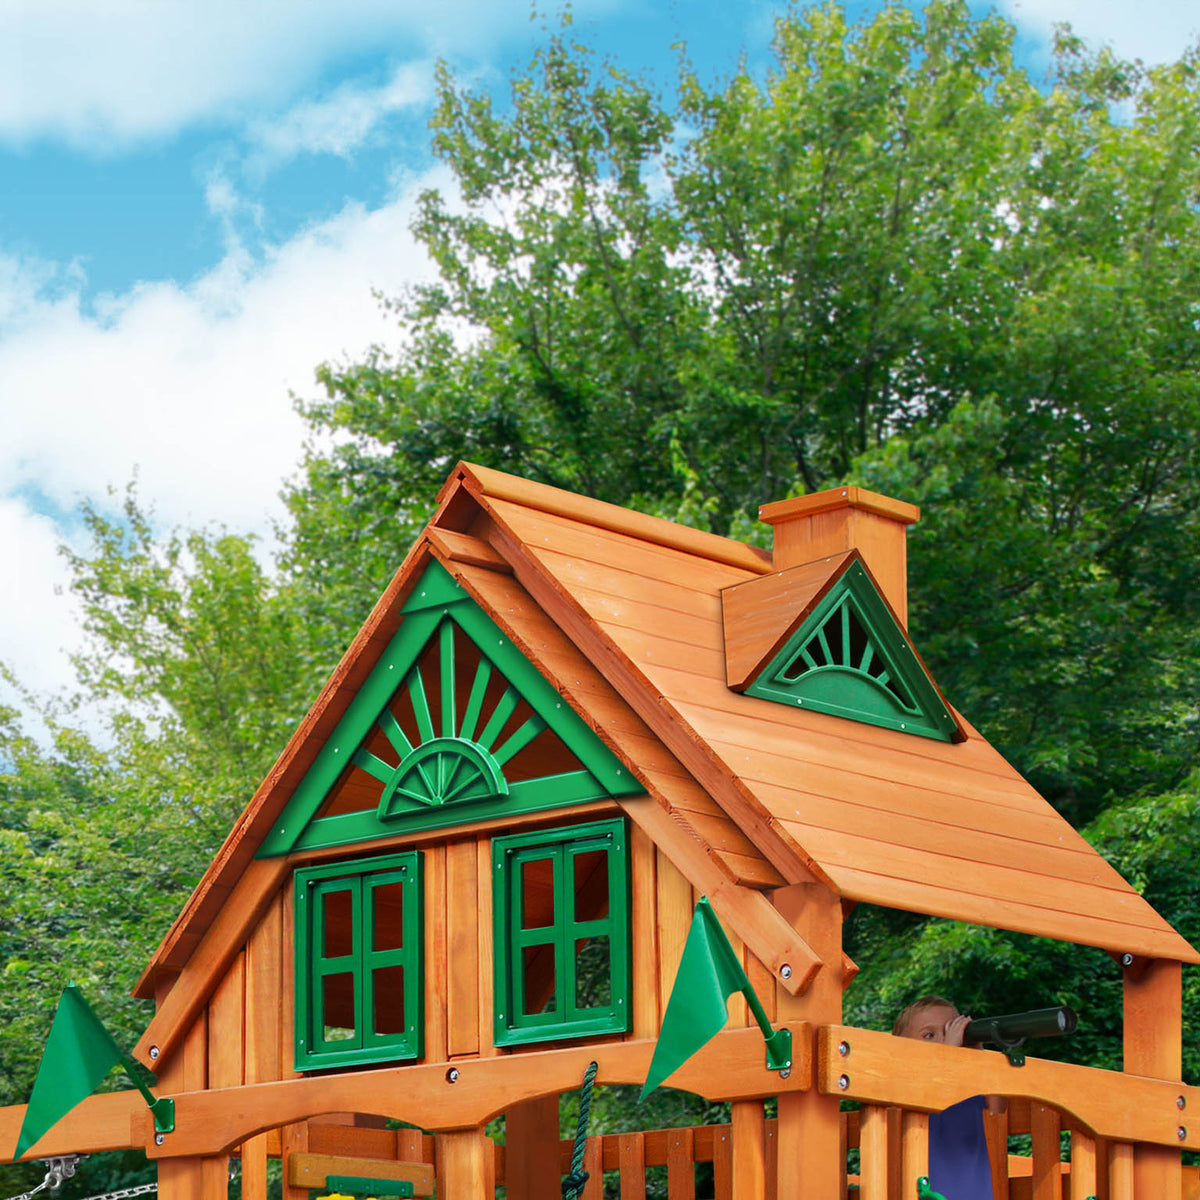 Gorilla-Playsets-Navigator-Treehouse-Wooden-Swingset-Roof